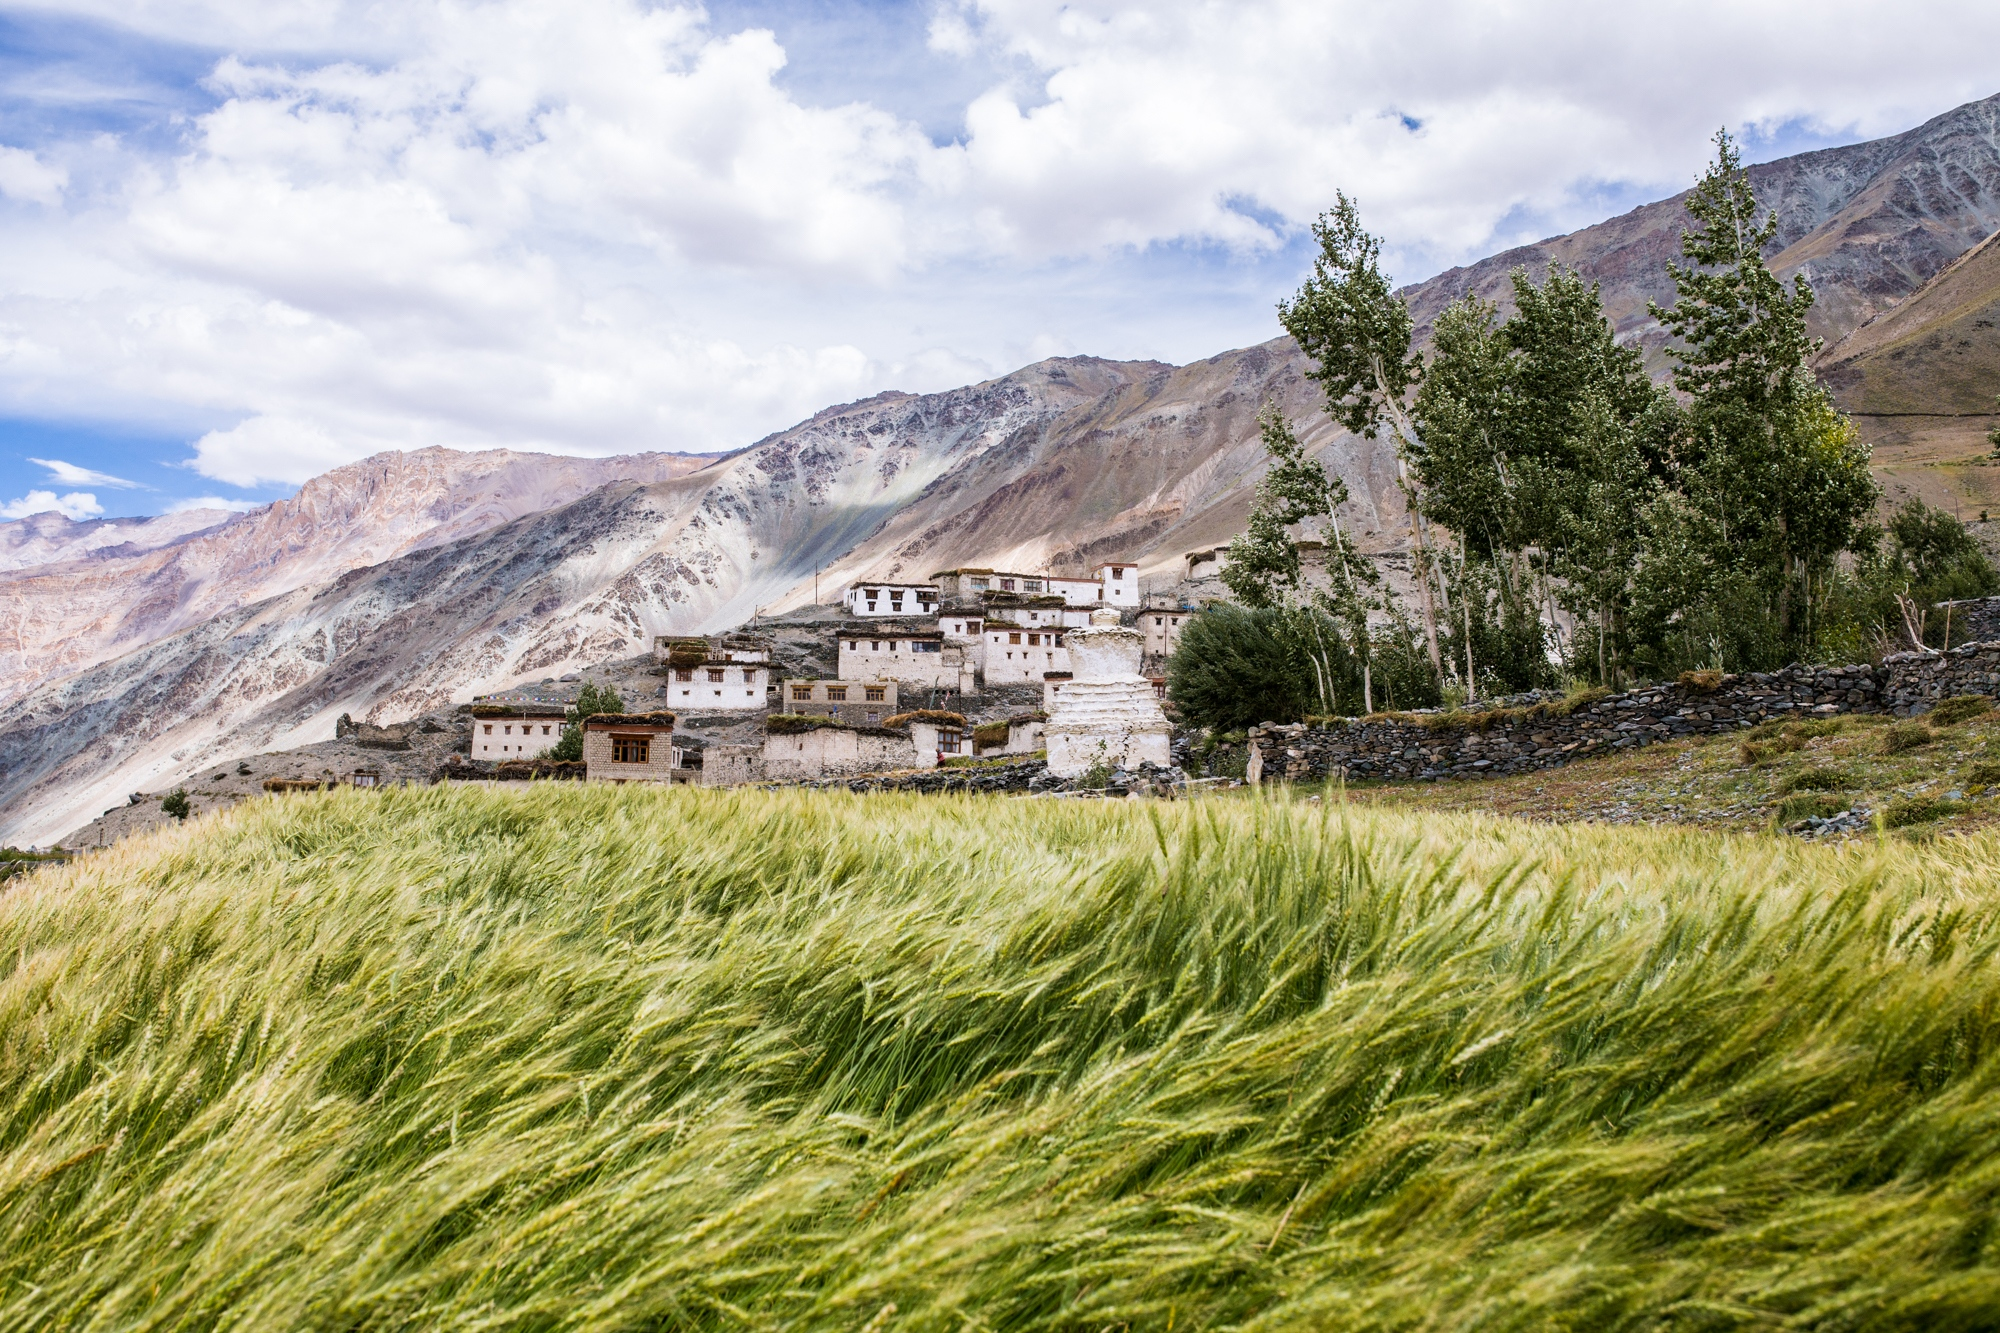 Wheat crops blow in the wind in the village of Kumik, India. Kumik has lost their glacier, once their main source of water, due to black carbon and climate changes warming impacts. Crop yields have significantly decreased with the reduction in water.